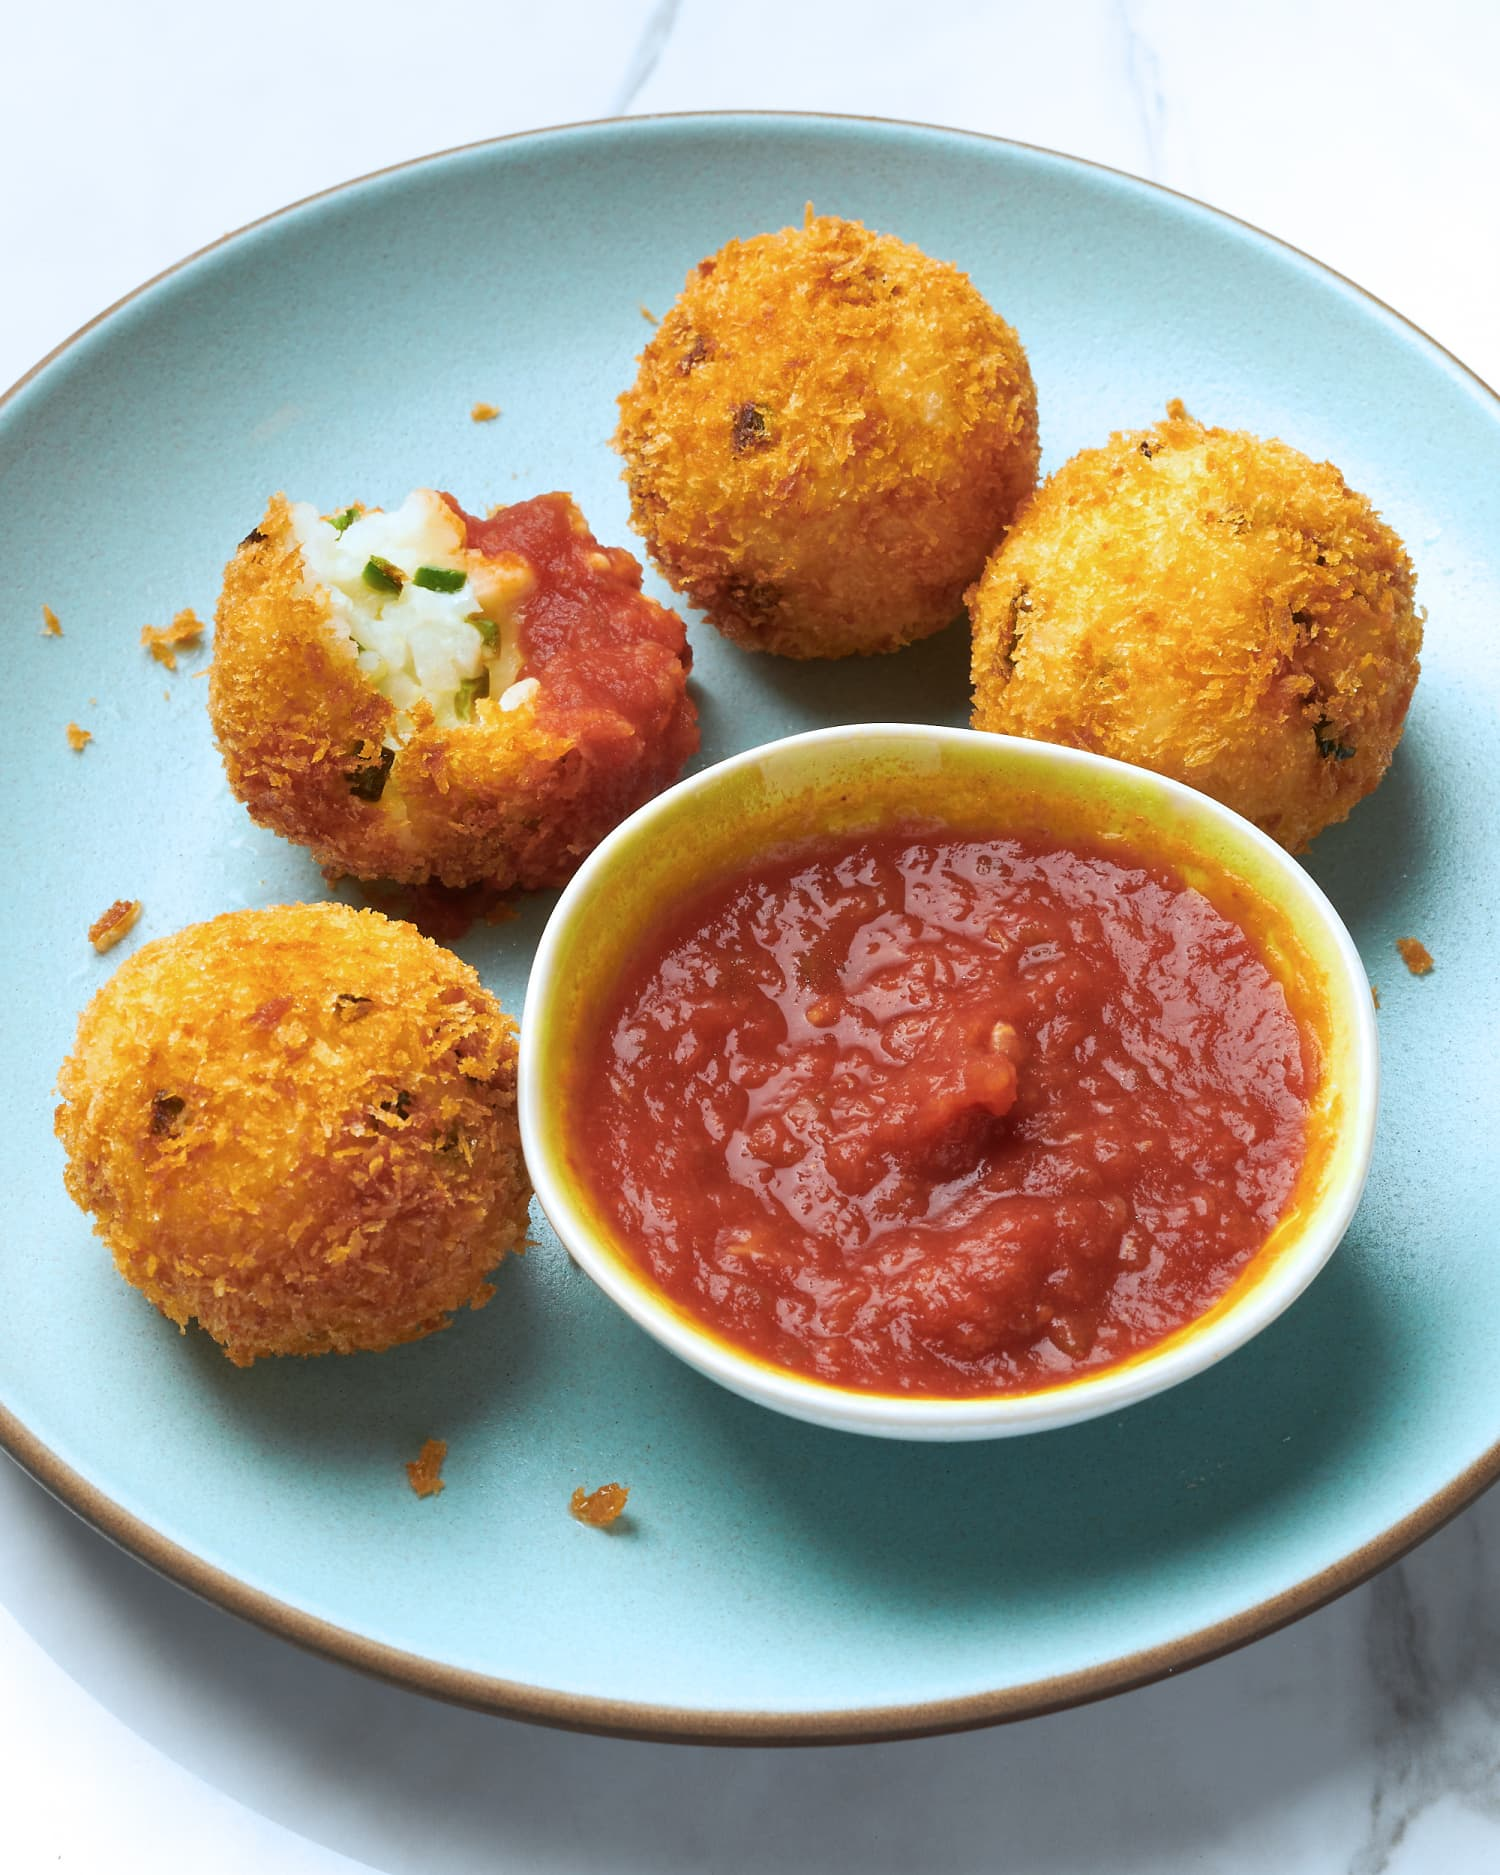 Cheesy Jalapeño Popper Rice Balls Are the Tastiest Way to Use Up Leftover Rice